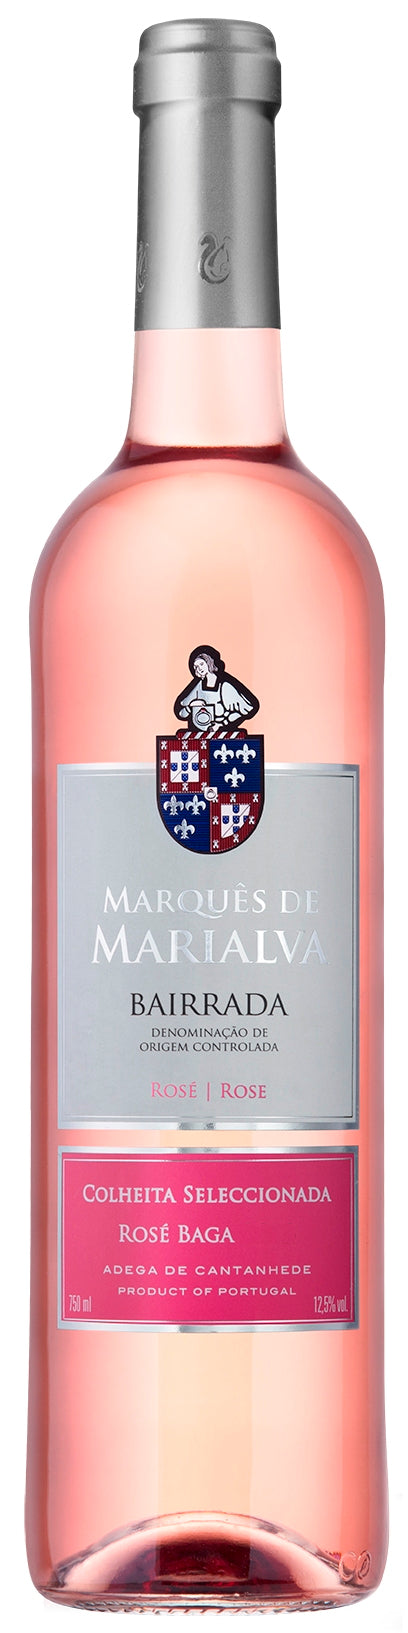 Marques de Marialva Rose